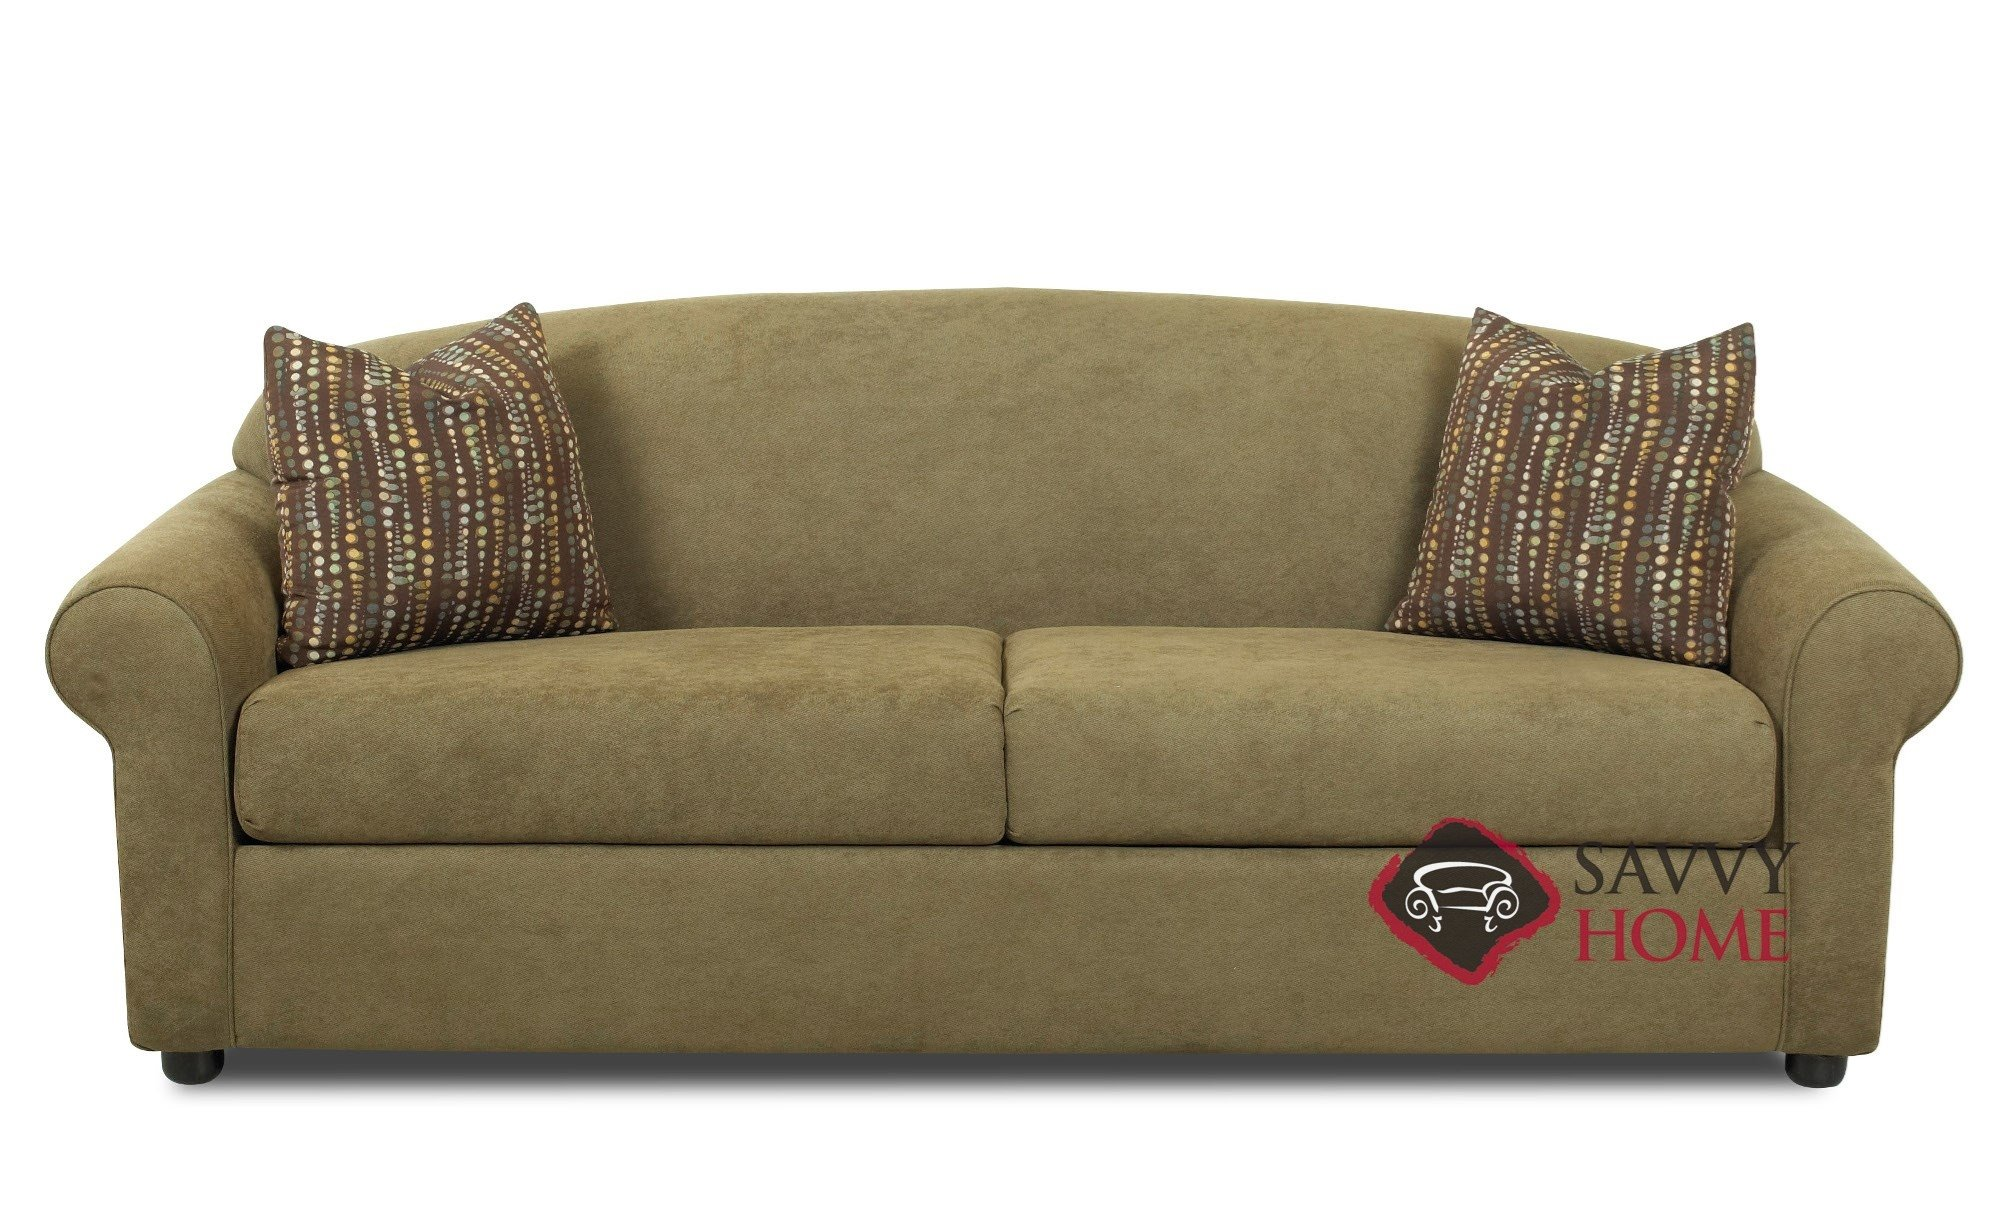 Chicago Sofa By Savvy